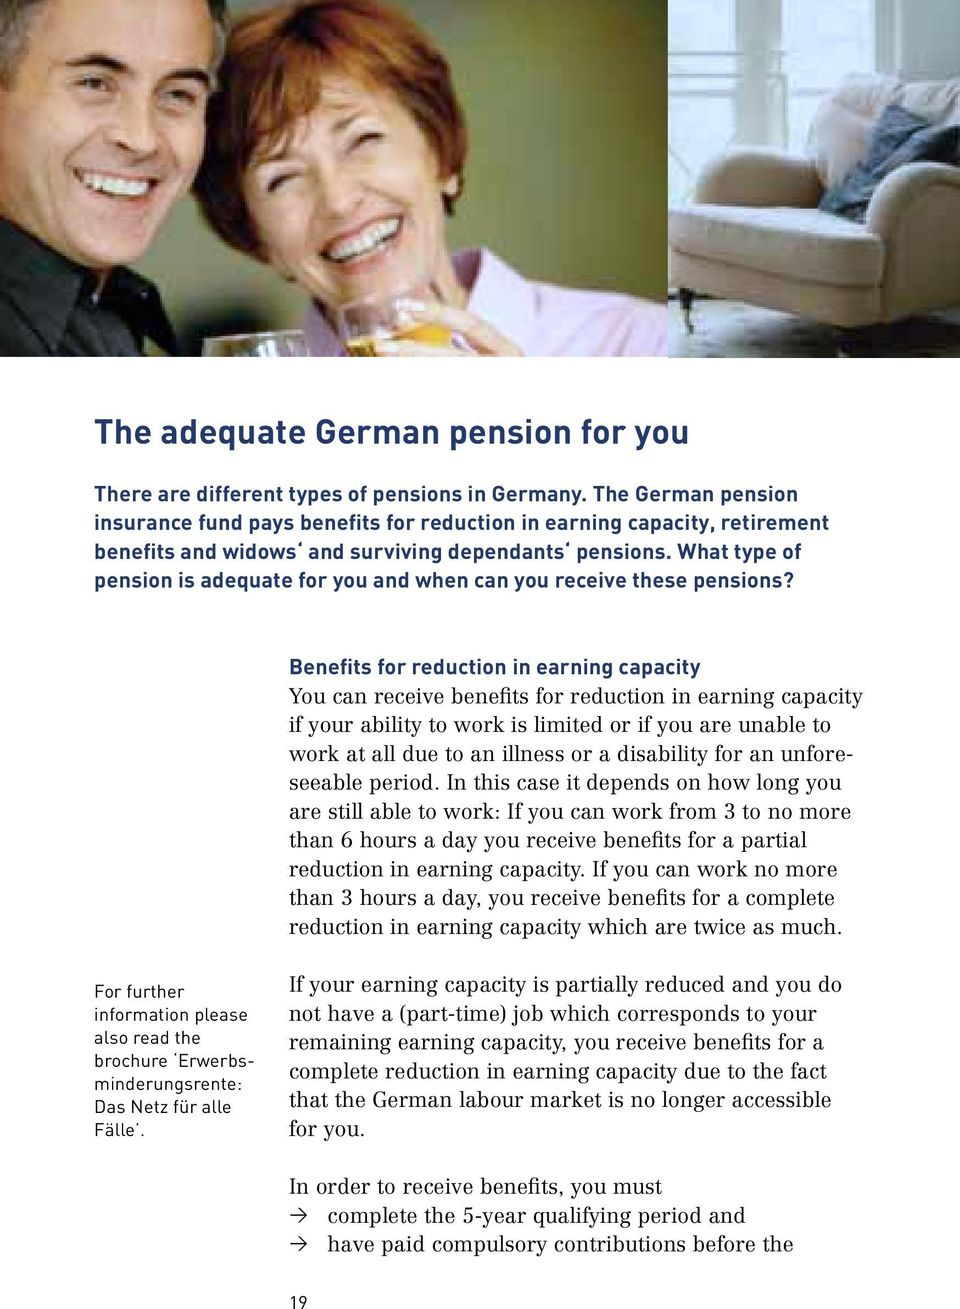 What type of pension is adequate for you and when can you receive these pensions?